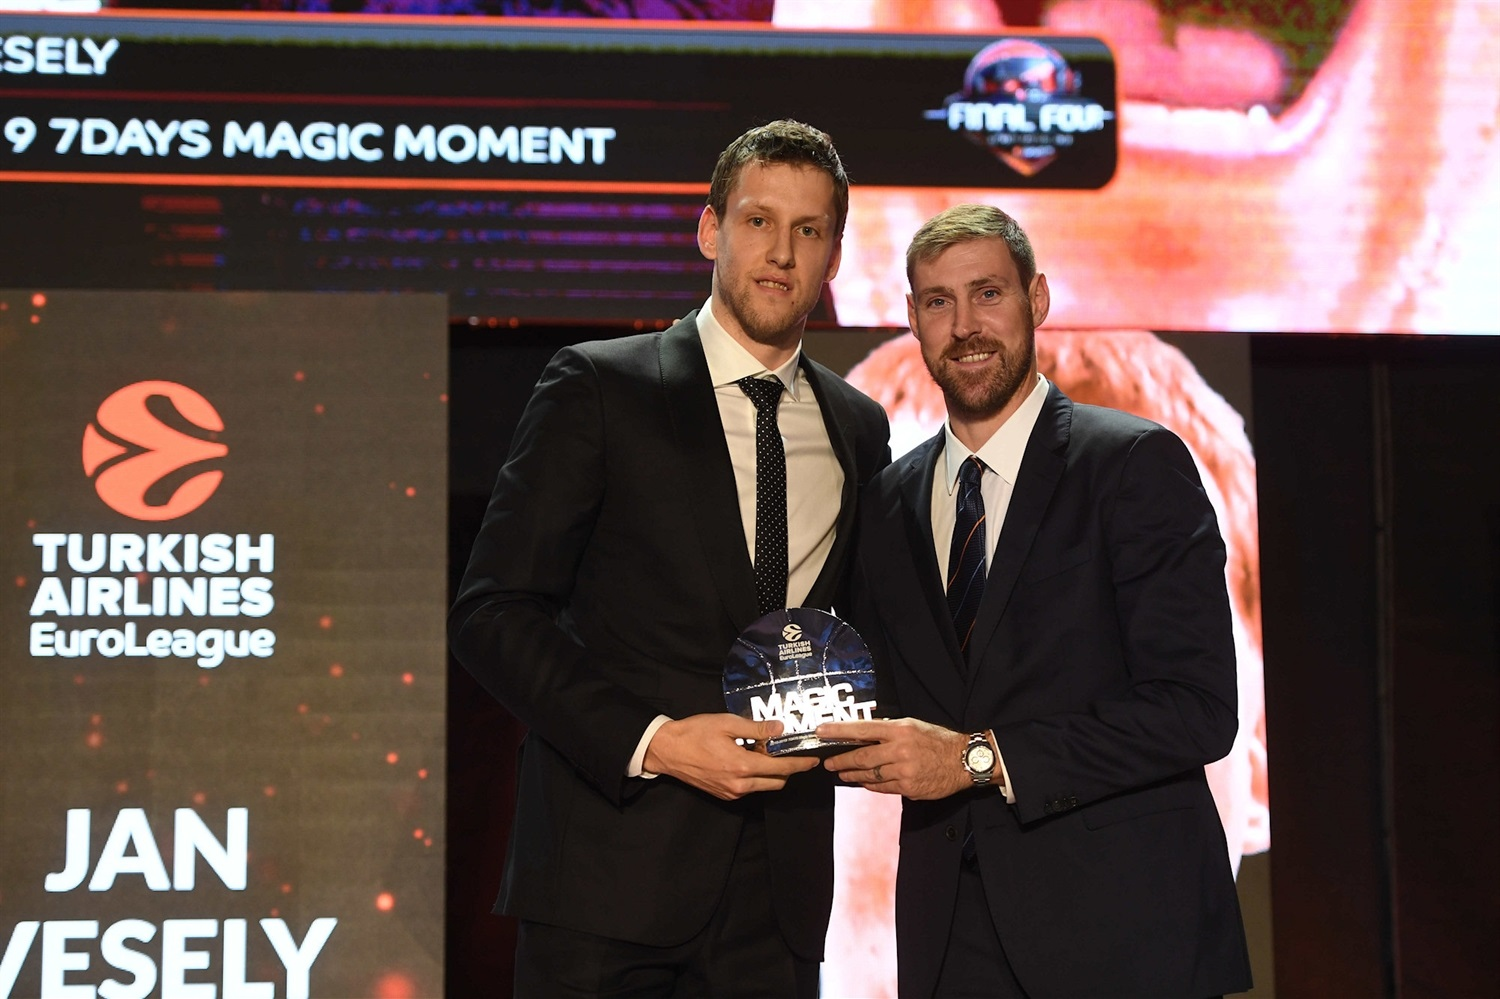 Jan Vesely, Magic Moment - 2018-19 Awards Ceremony - Final Four Vitoria-Gasteiz 2019 - EB18